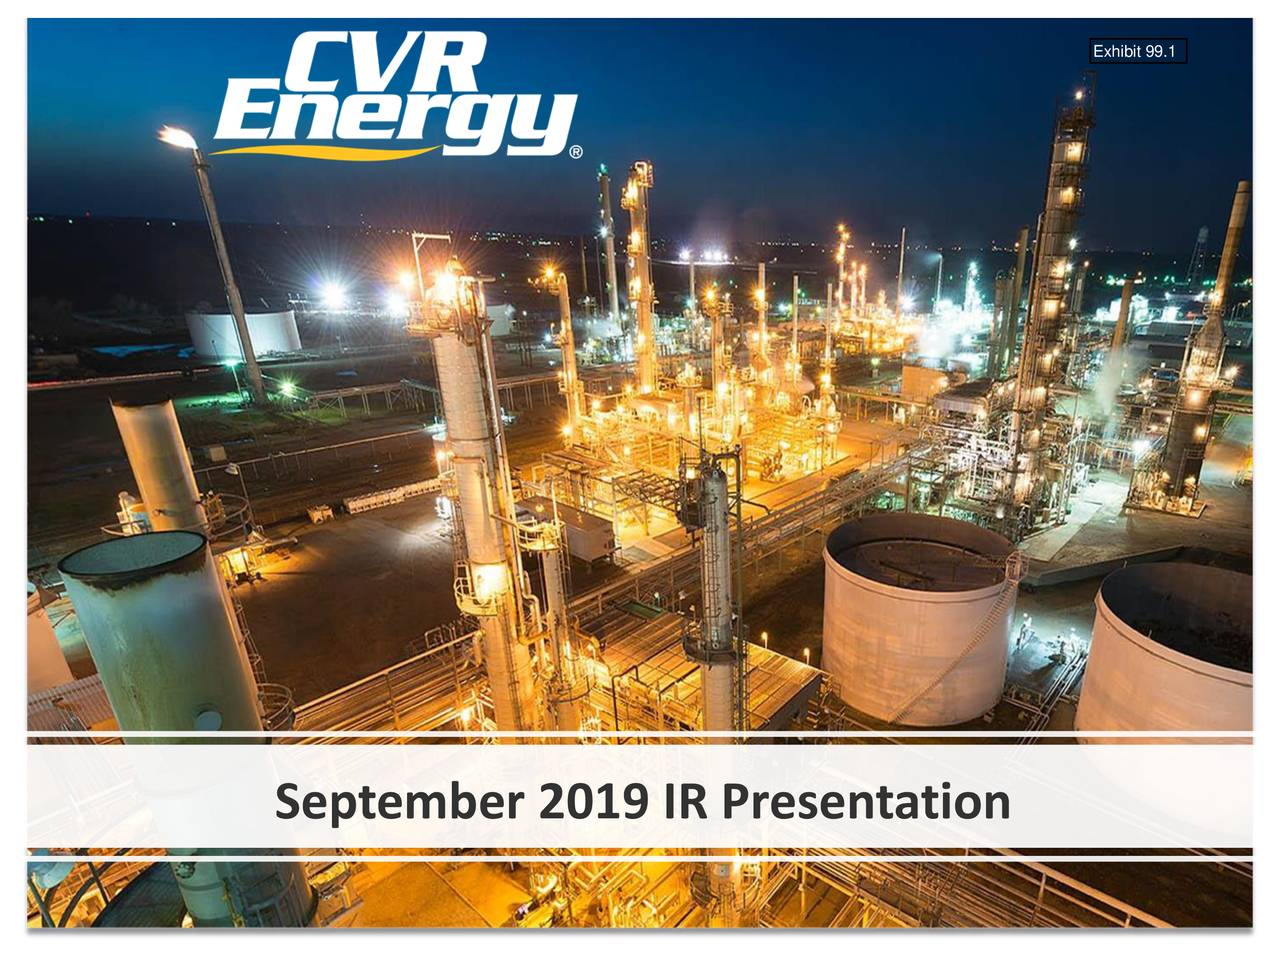 September 2019 IR Presentation